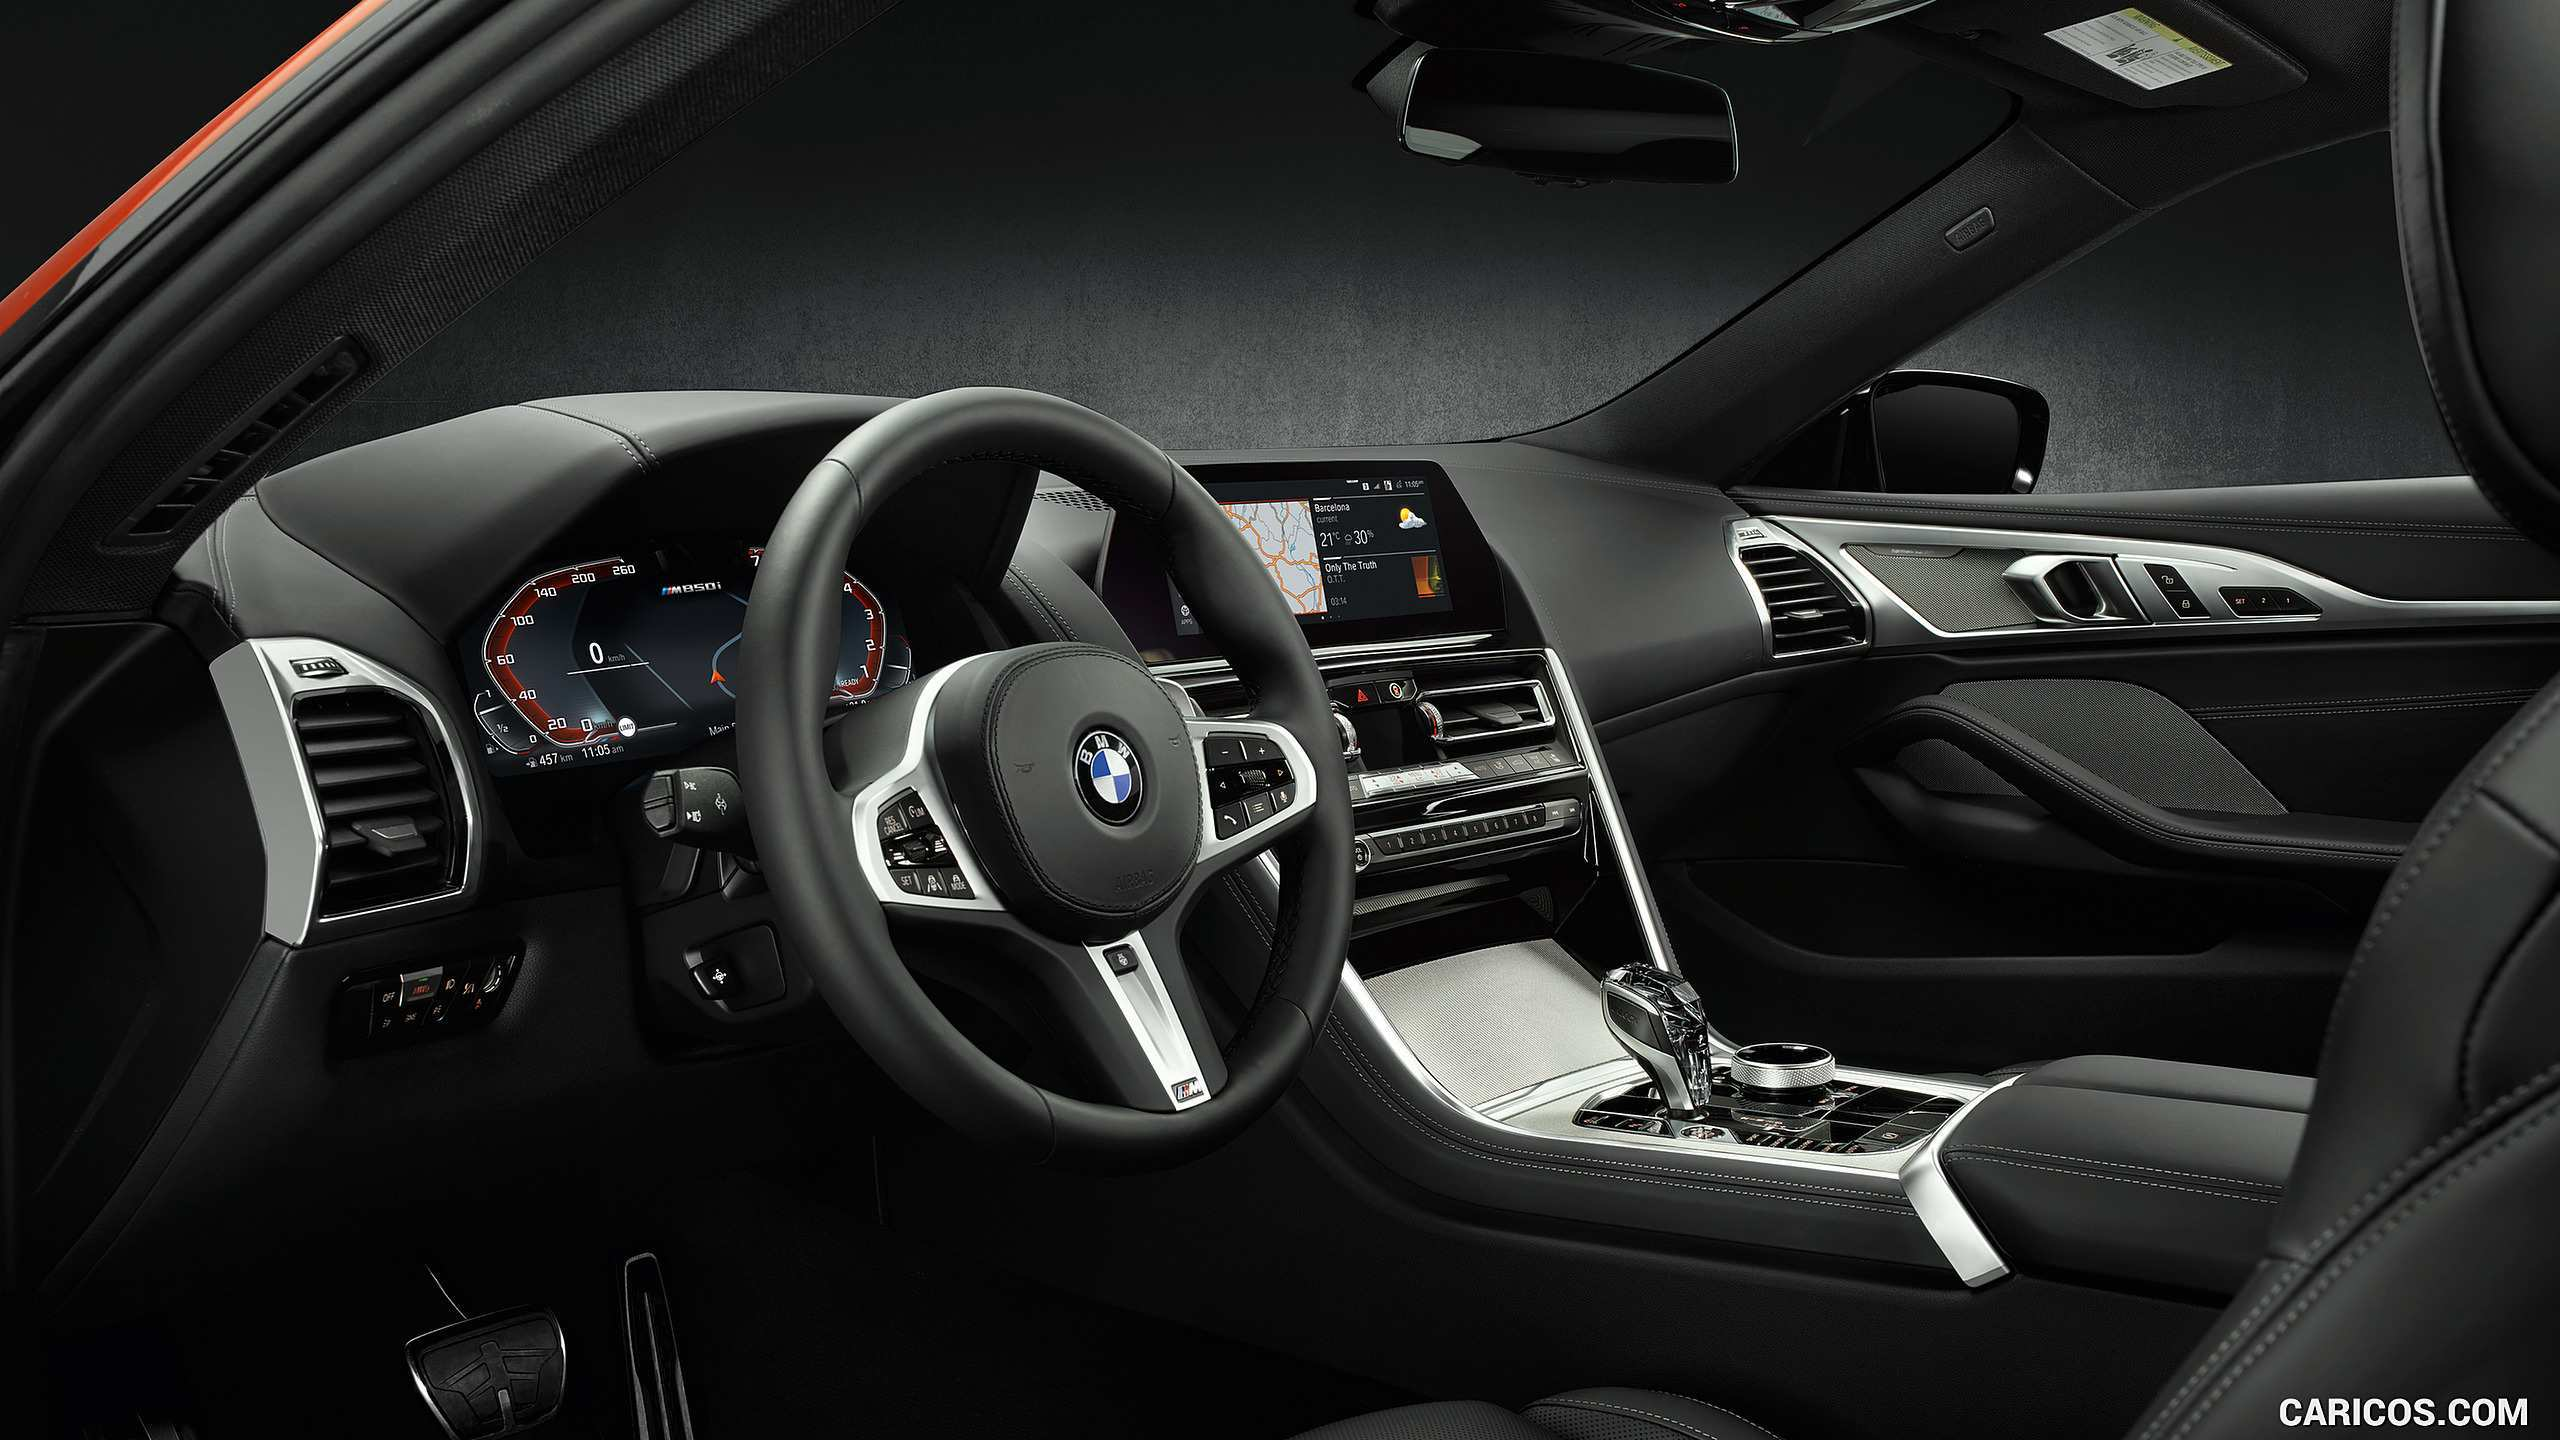 93 All New 2019 Bmw 8 Series Interior Style for 2019 Bmw 8 Series Interior